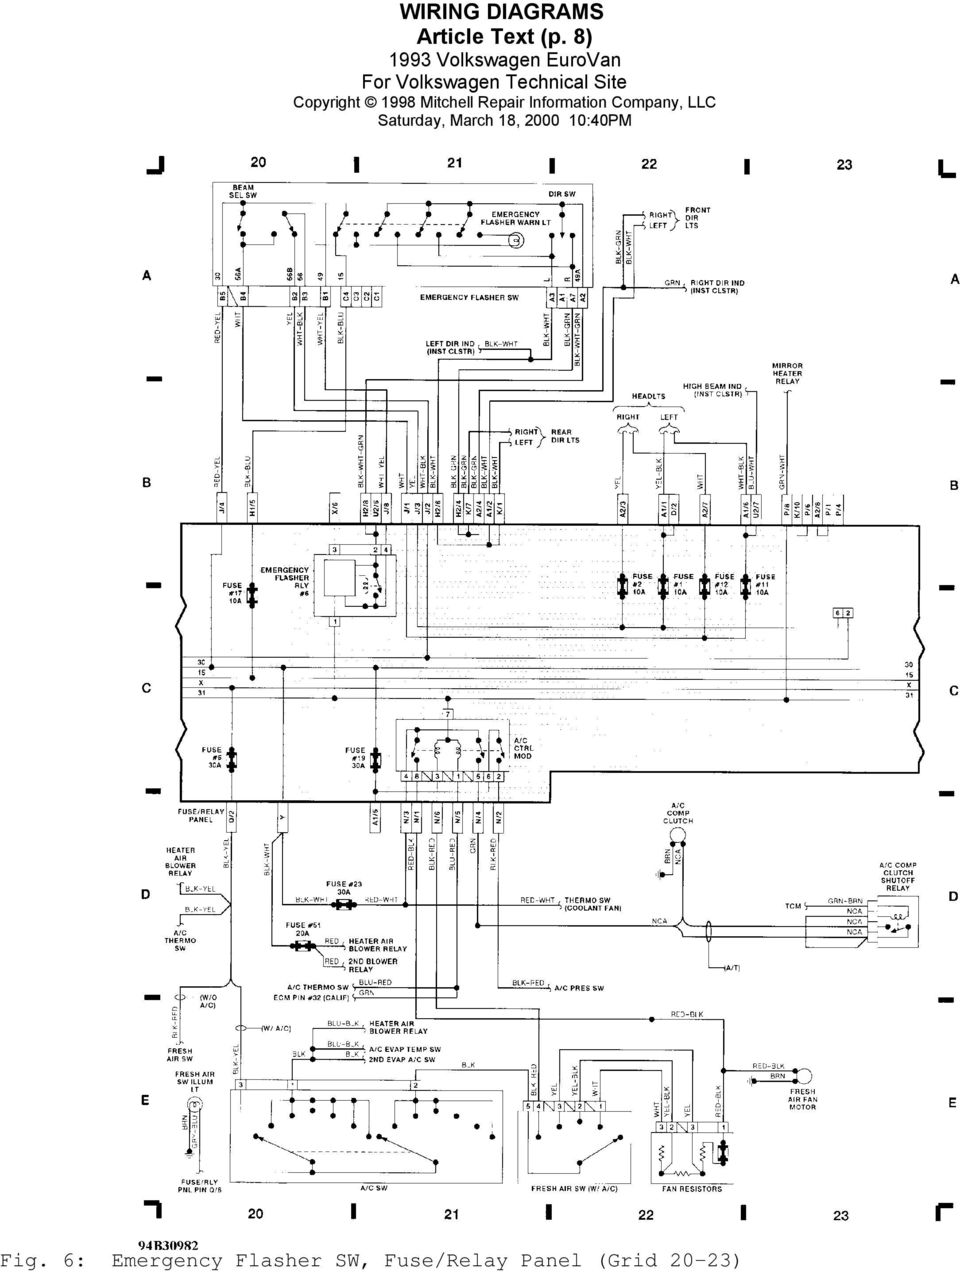 06 yamaha grizzly 660 wiring diagram